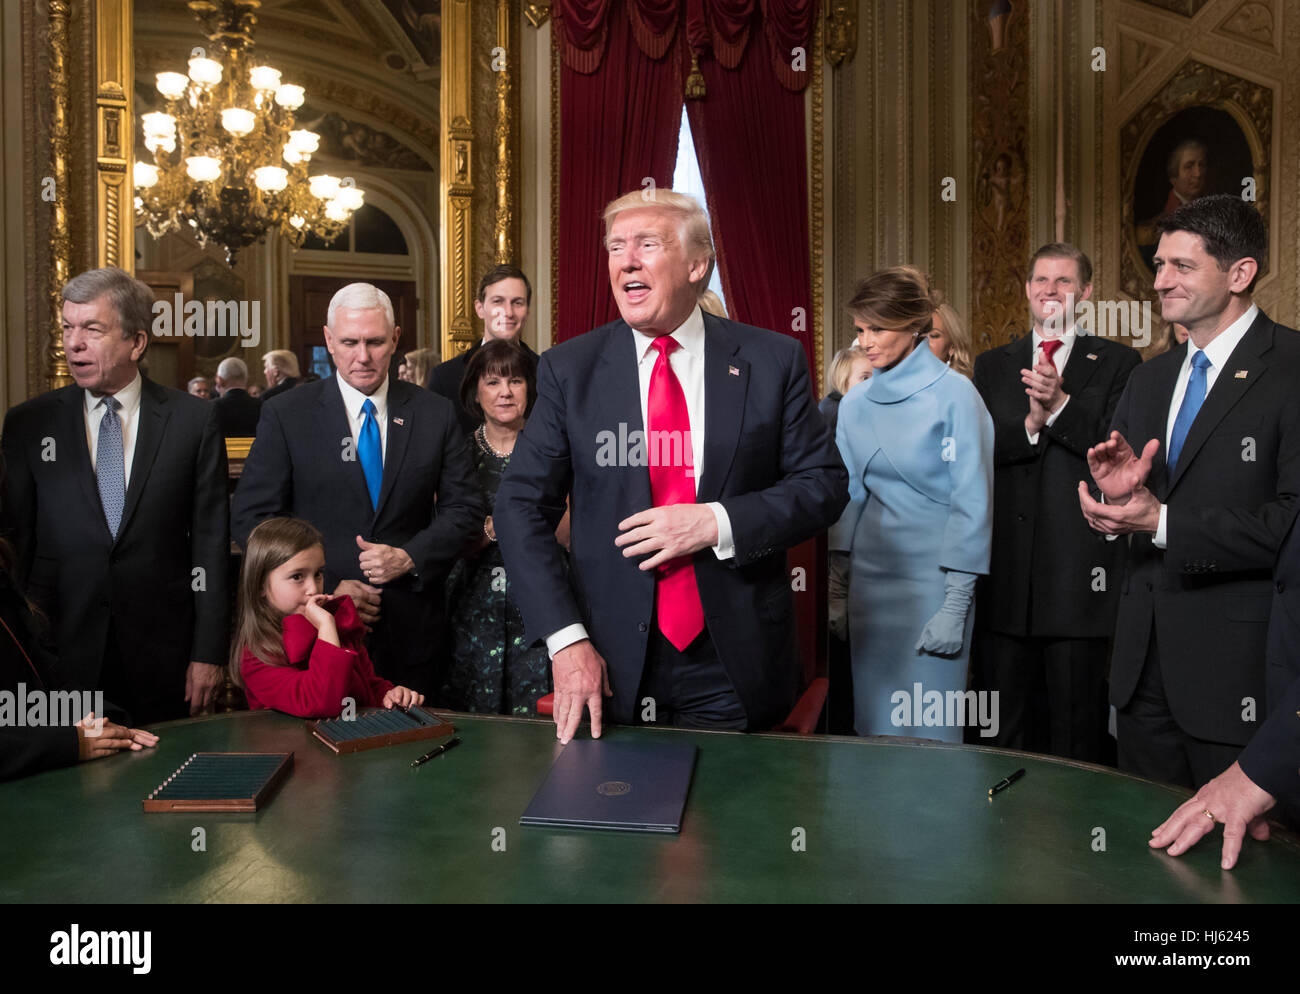 United States President Donald Trump is joined by the ...